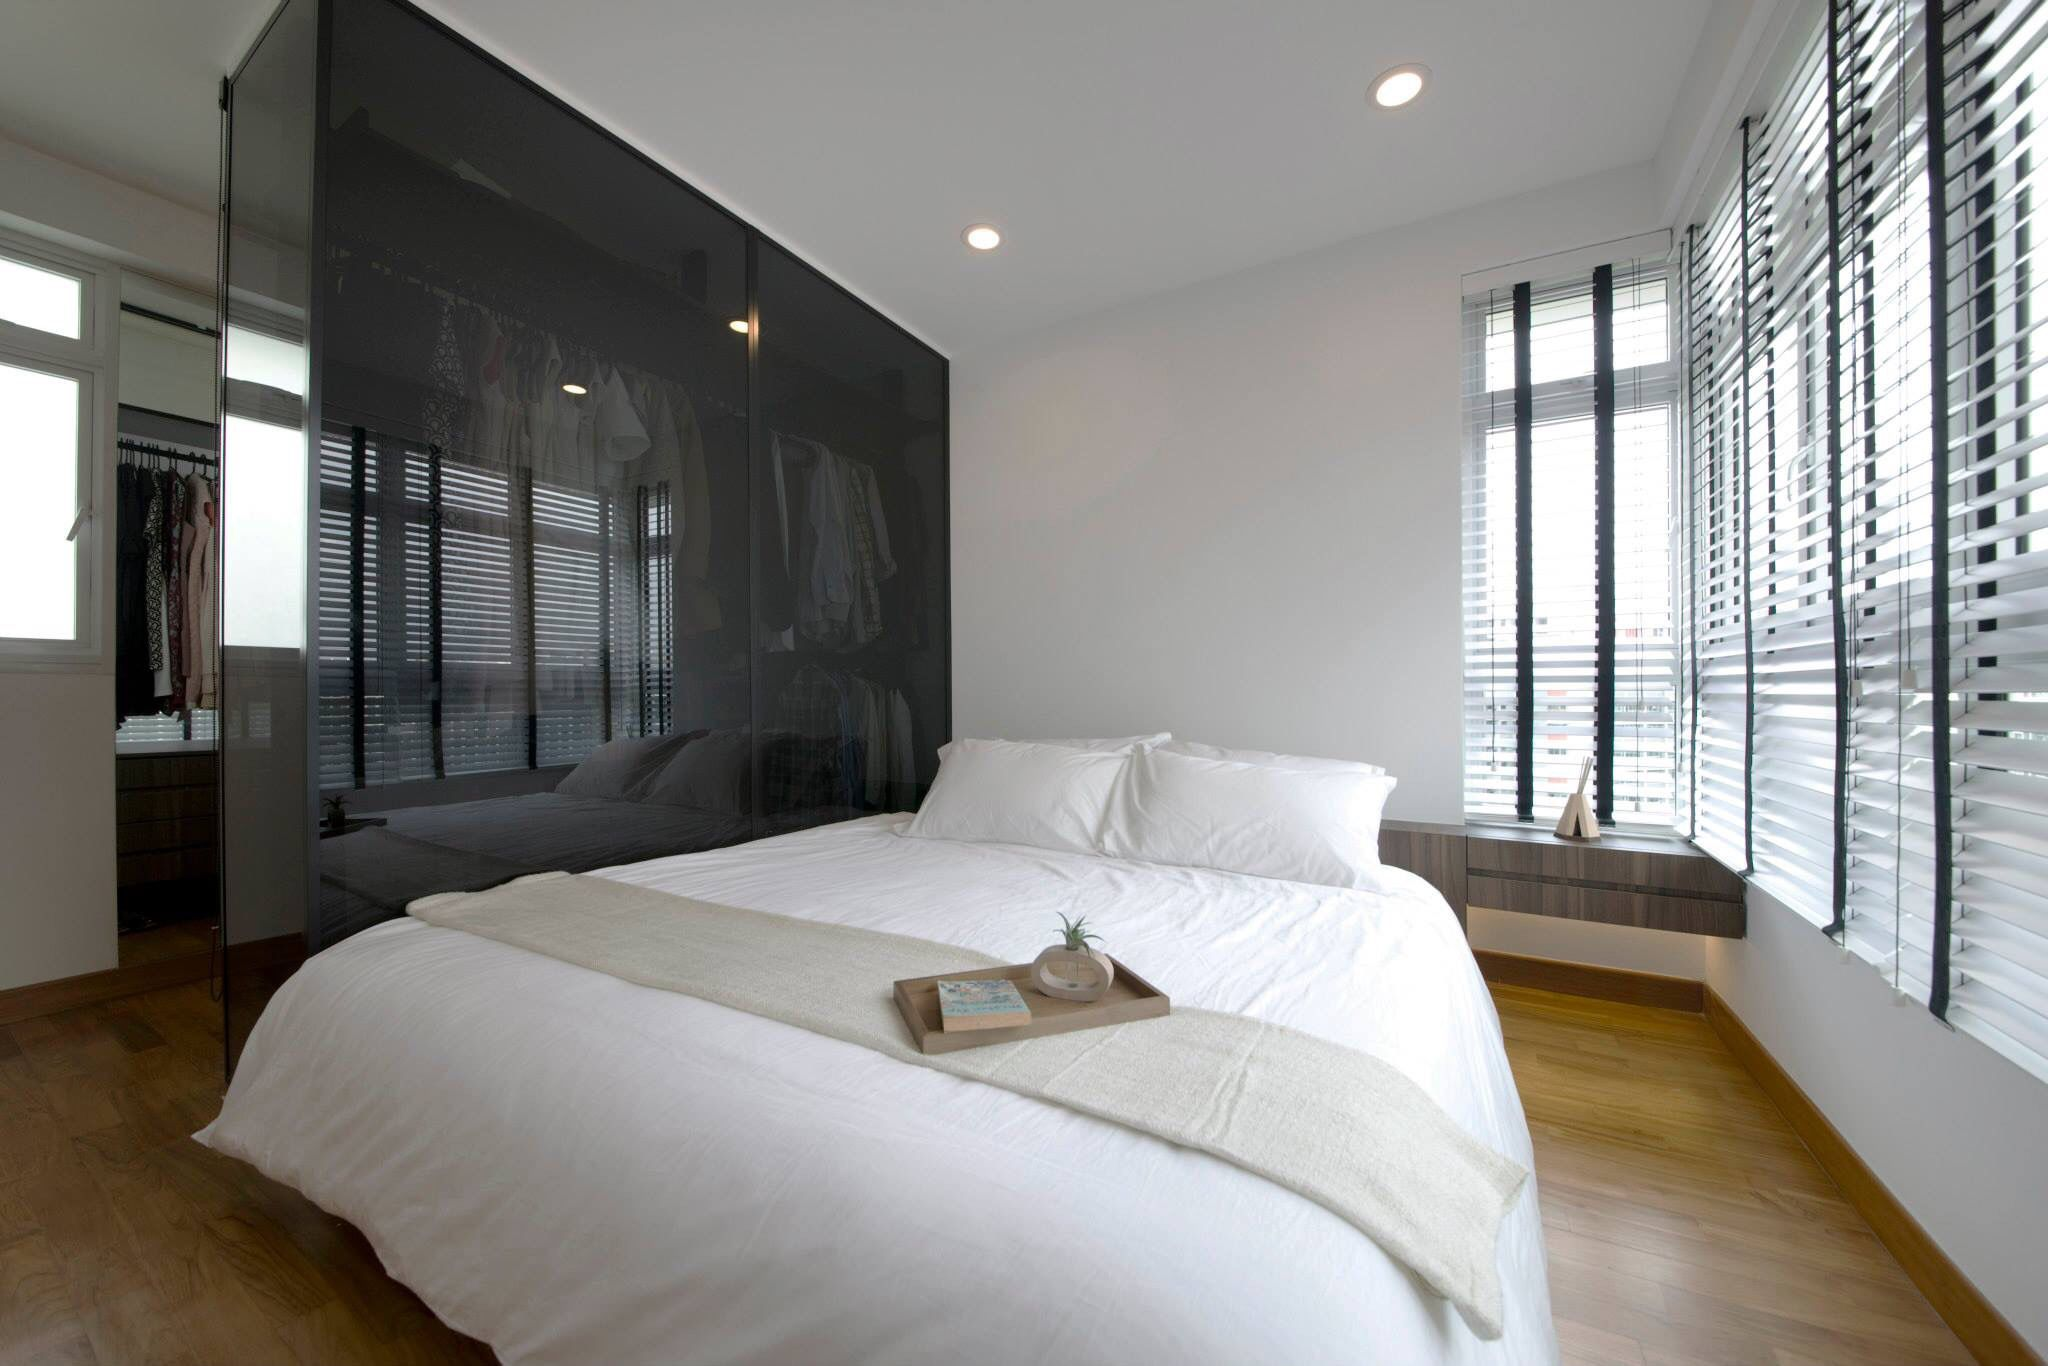 Master bedroom view with walk in wardrobe | Master bedroom ...